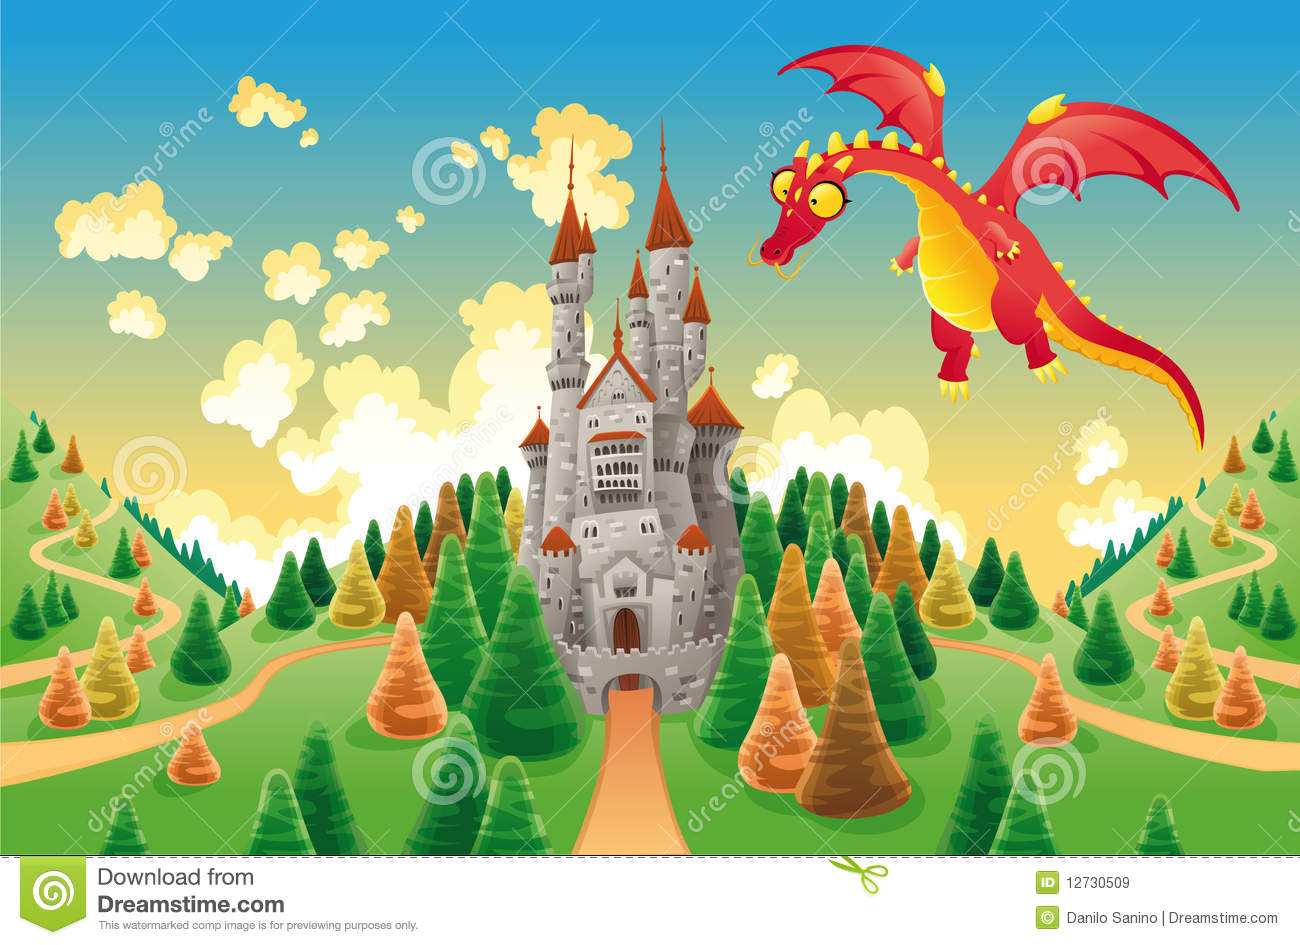 Panorama with medieval castle and dragon royalty free